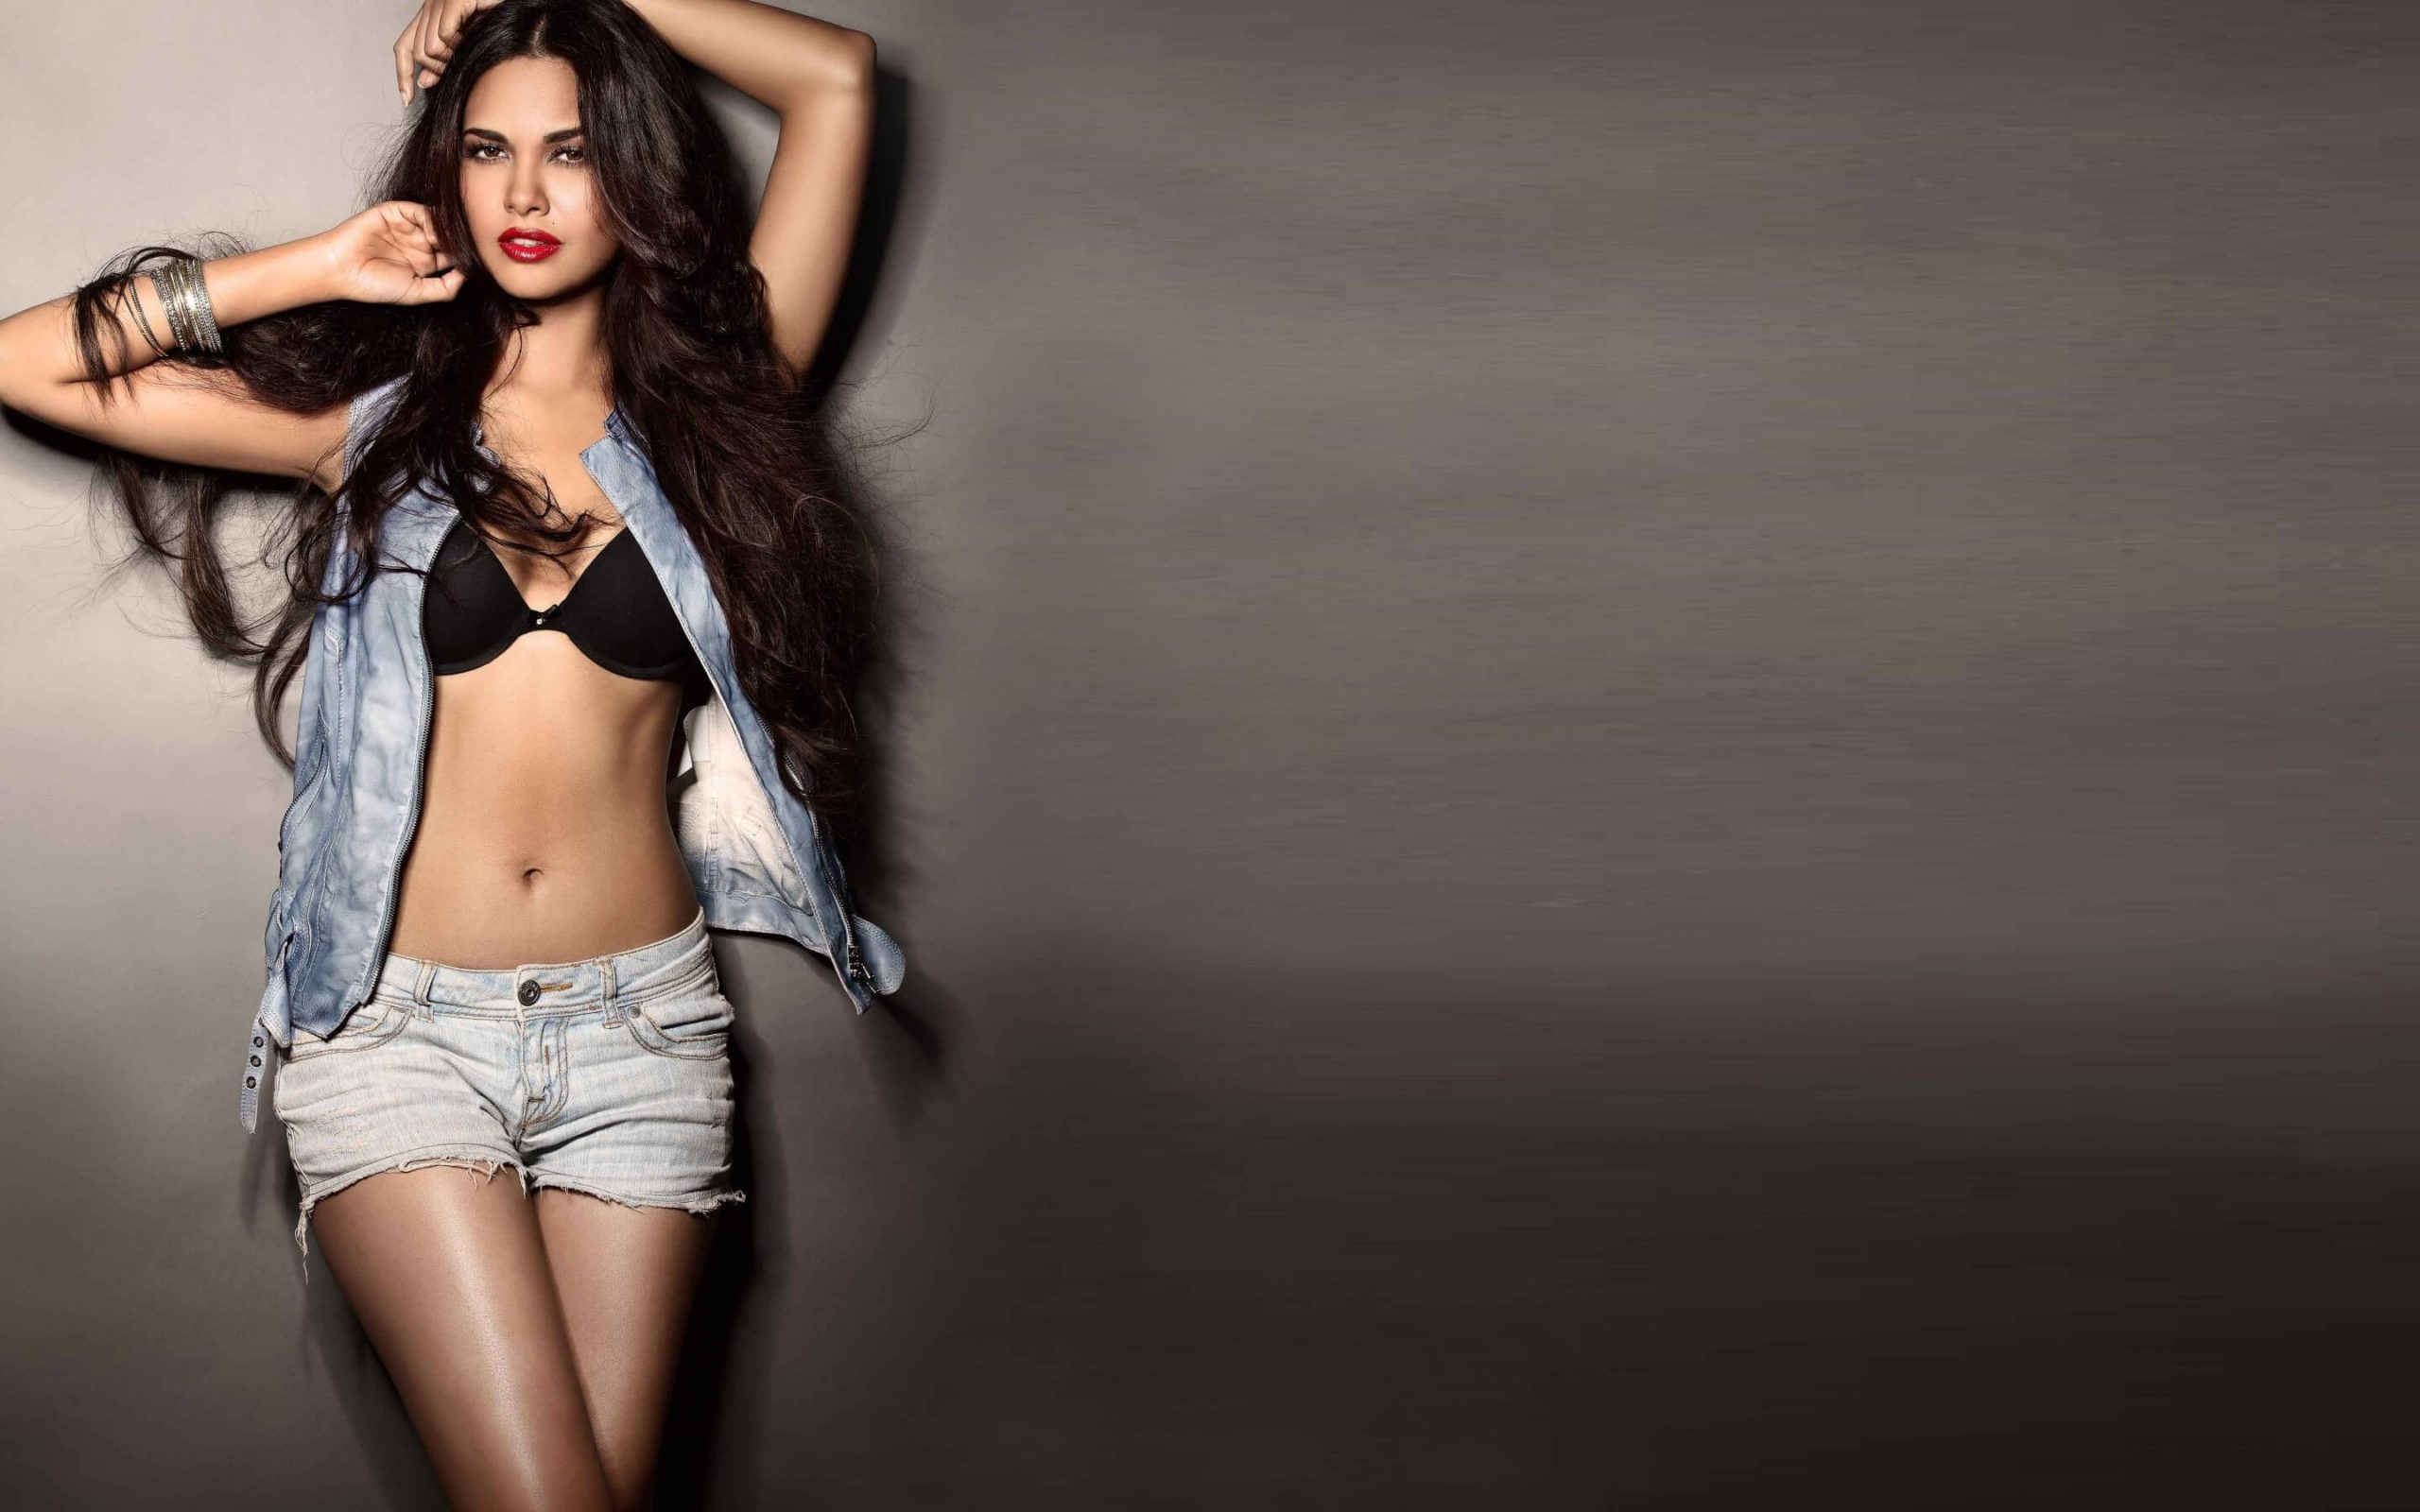 Esha Gupta Images(photos), Age, Height, Net Worth, Date Of Birth, Family, Biography, Son, Marriage, Boyfriend, Education, Awards, Hairstyle, Instagram, Twitter, Facebook, Wiki, Imdb (4)